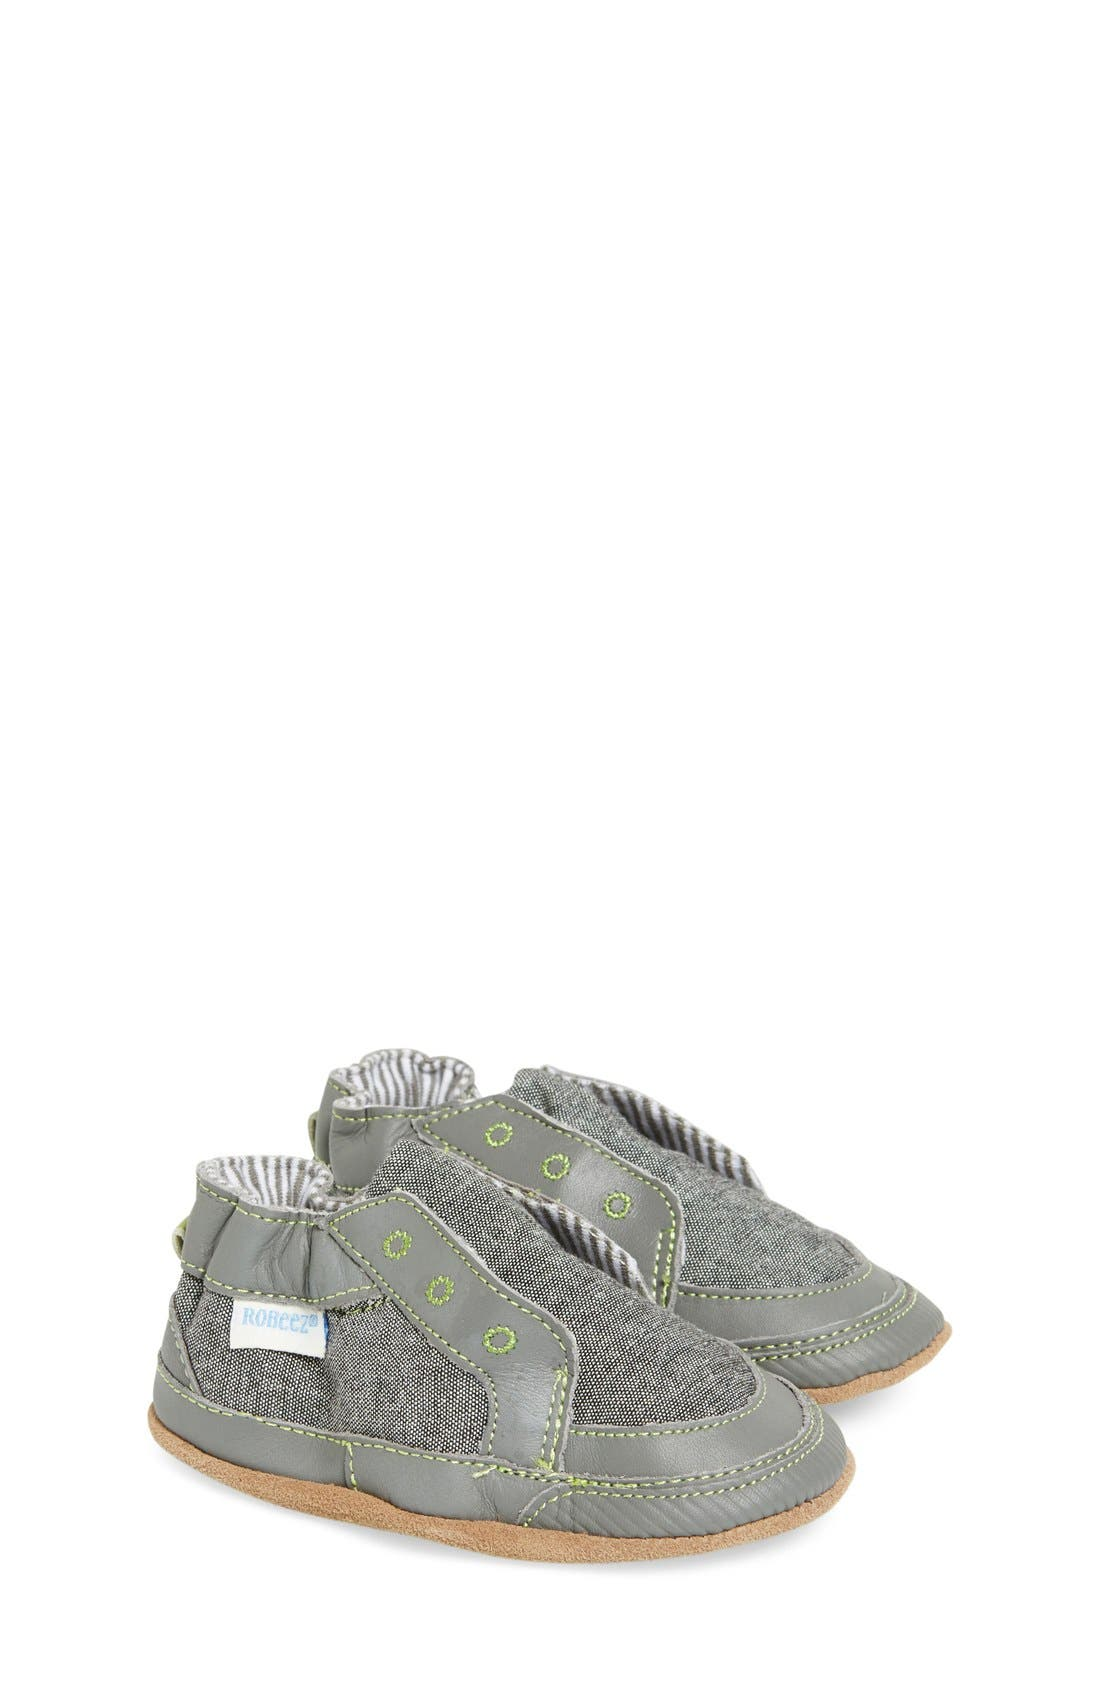 'Stylish Steve' Slip On,                             Main thumbnail 1, color,                             GREY